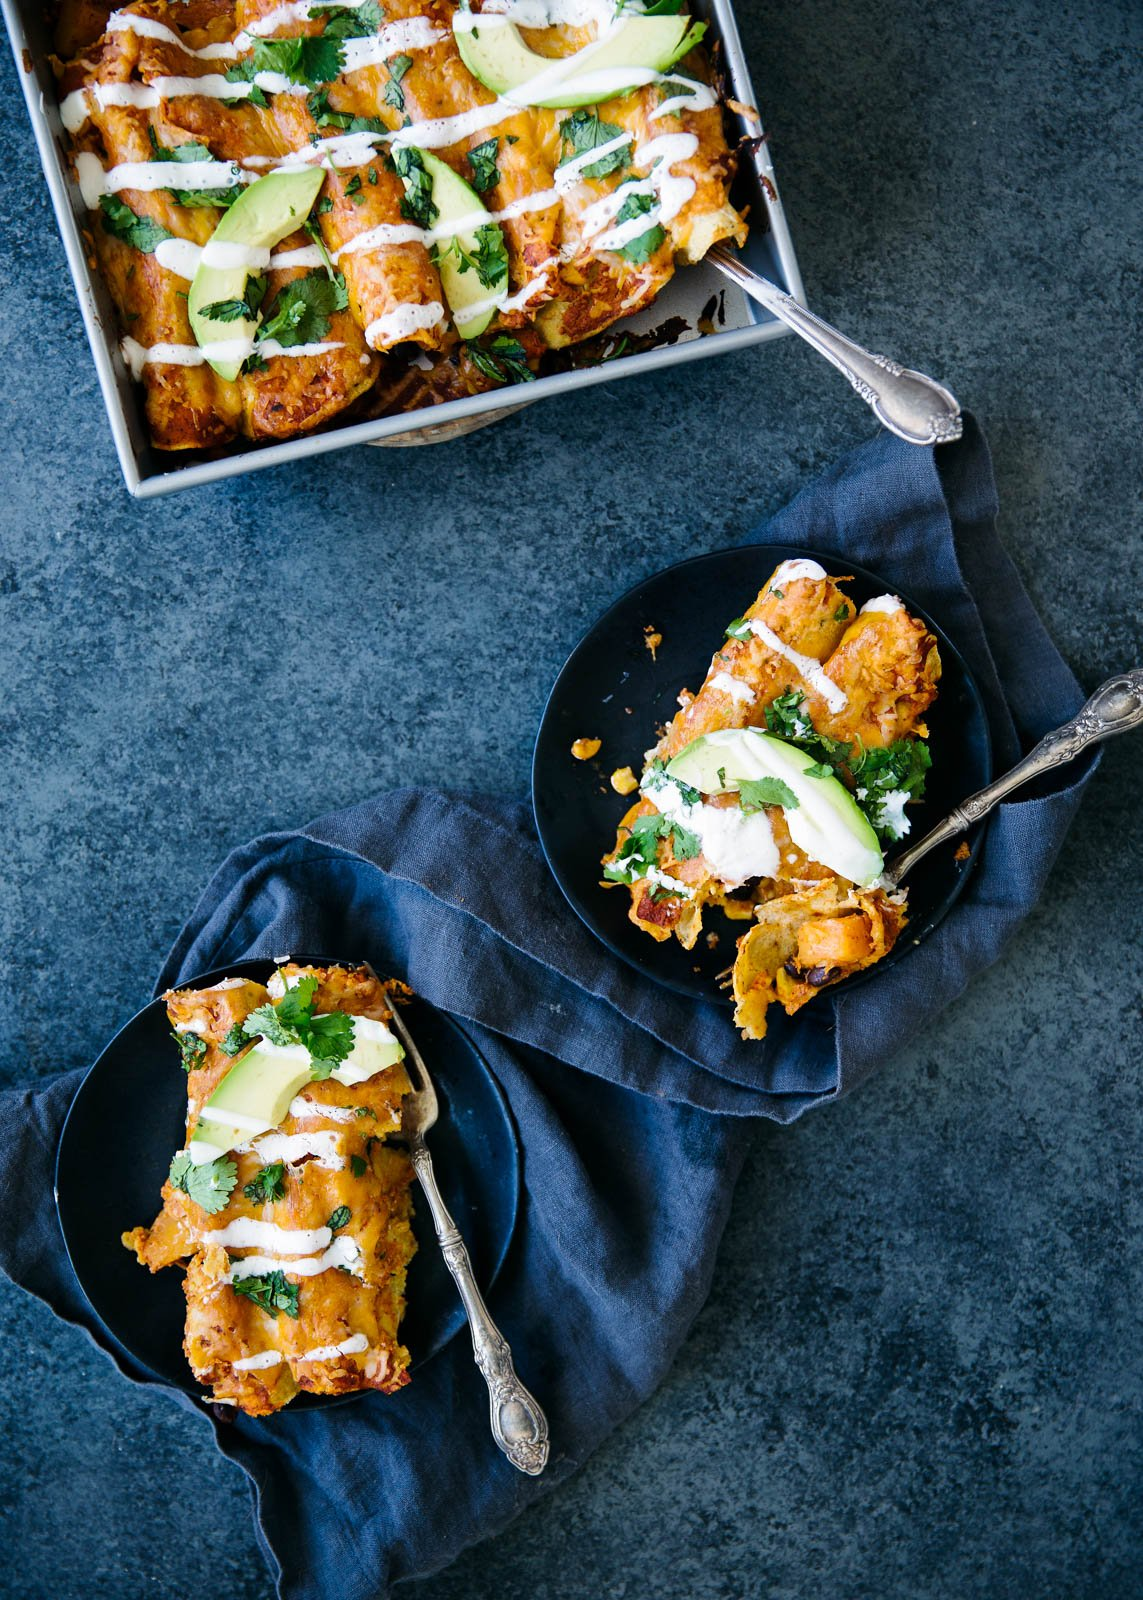 Healthy lightened up vegetarian enchiladas with black beans, butternut squash, corn and a delicious chipotle greek yogurt sauce. These enchiladas are packed with protein!